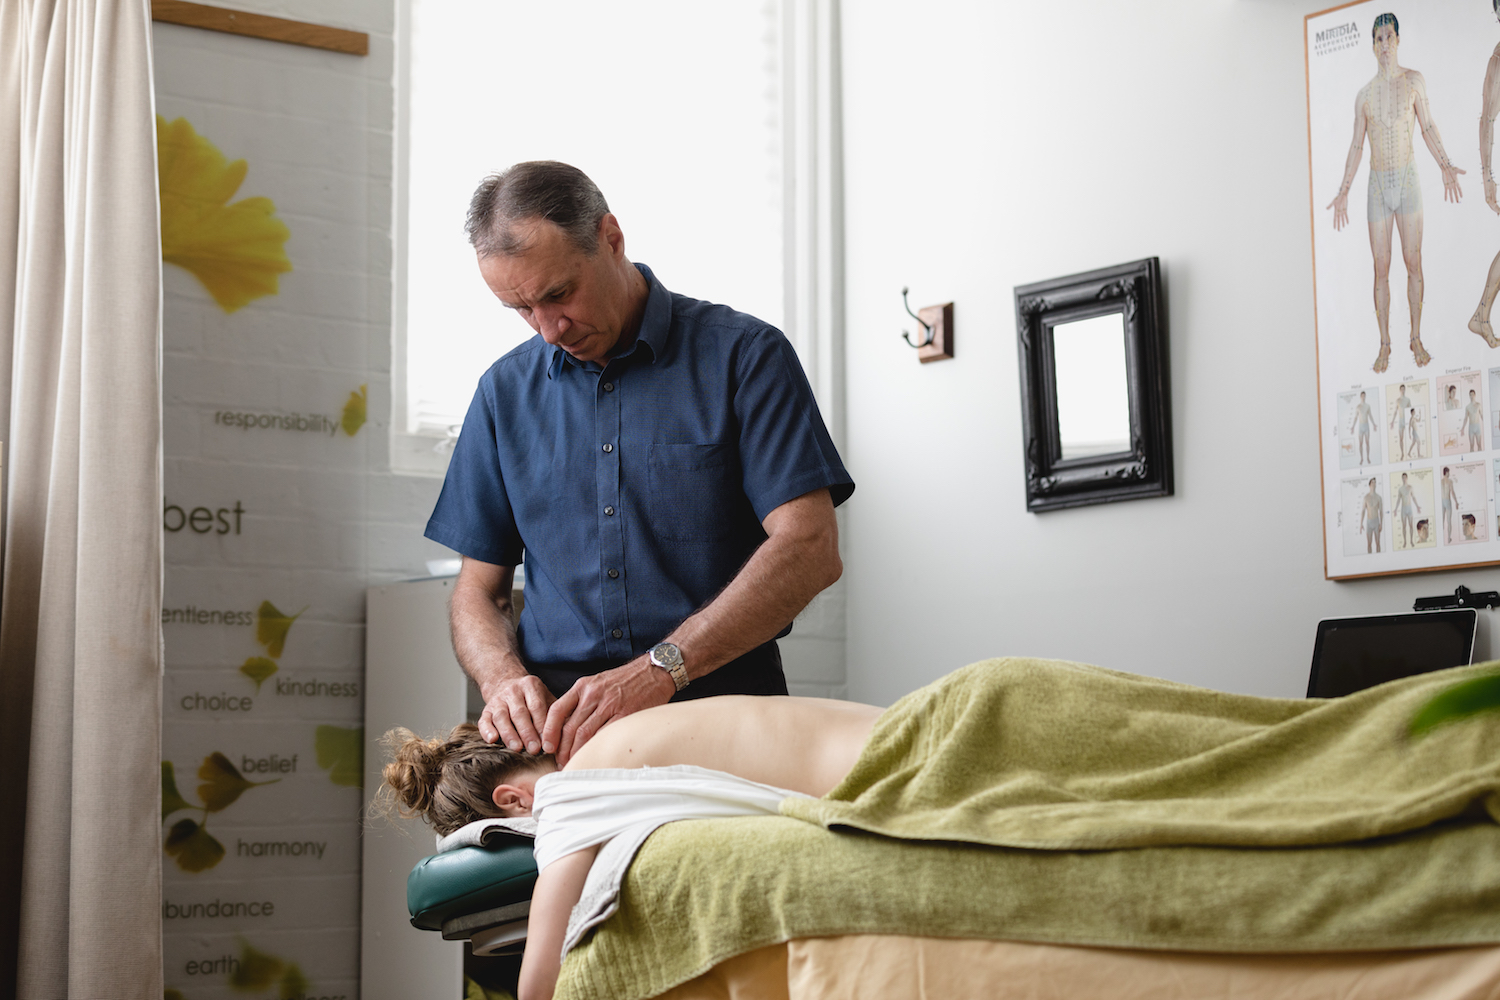 TasWellbeing Mark Hudson providing a client with a Remedial massage treatment.